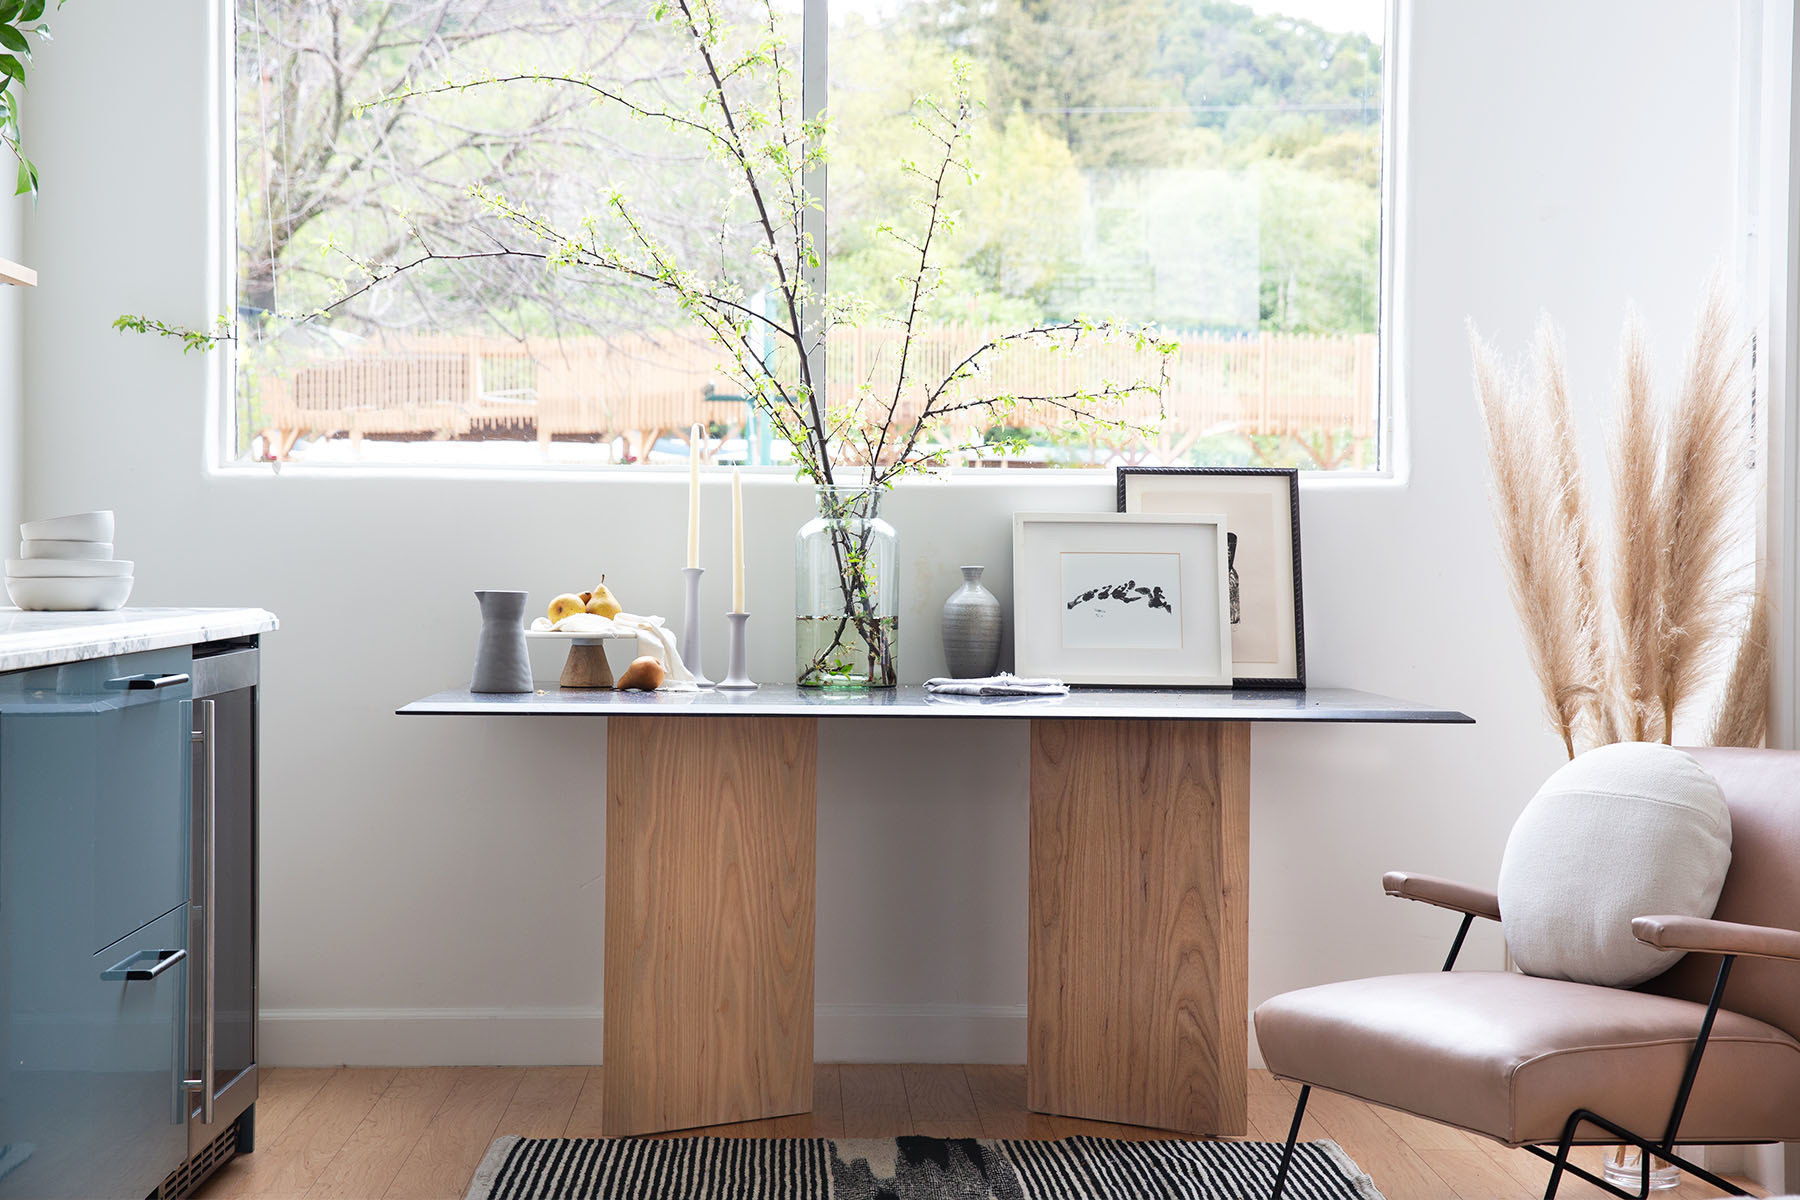 A custom table designed by Lauren Nelson and built by Kilomade Studios holds pride of place in the designer's San Anselmo studio. Fox Marble Counter | Target Ceramics | Elsie Green Vase | Target Cake Stand | Vintage Candlesticks | Vintage Frames.